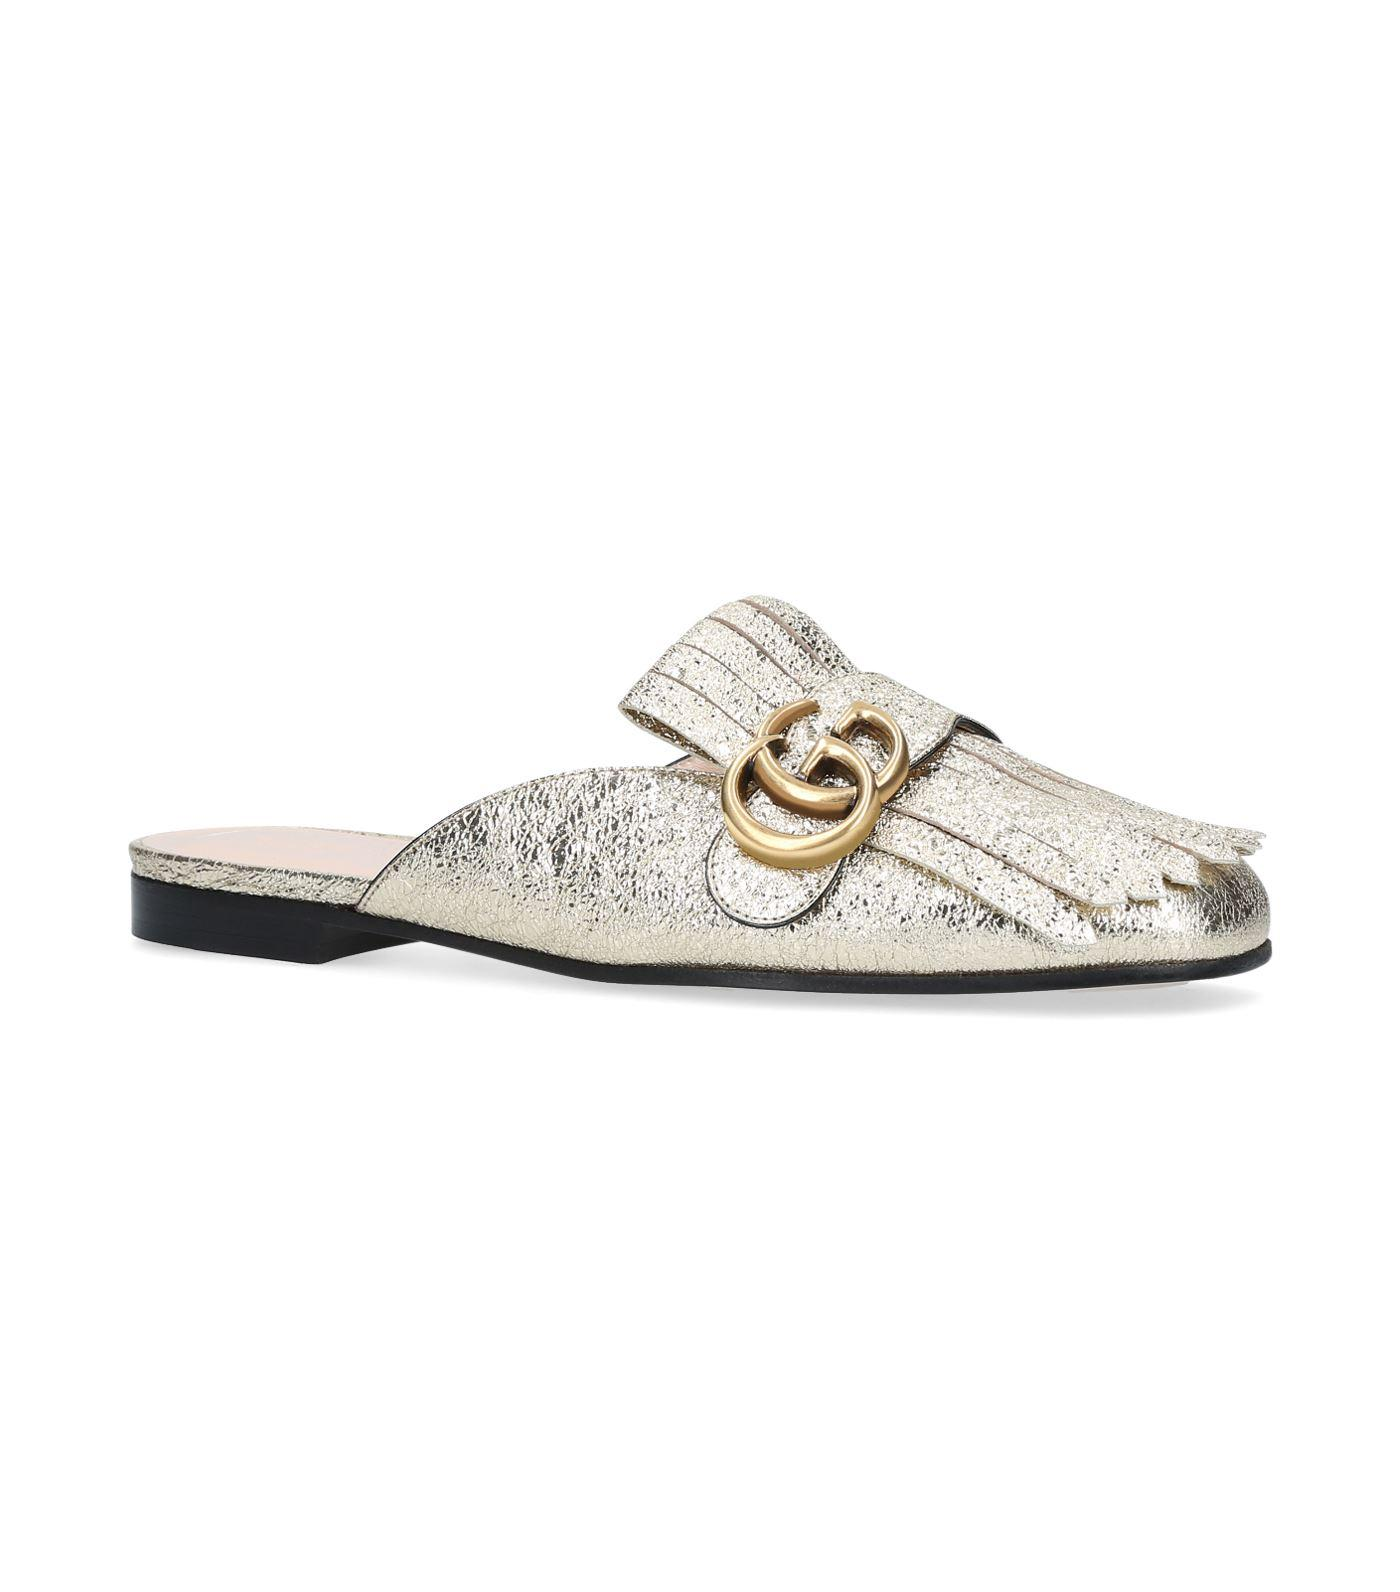 9cd5f4f185b Gucci Marmont Fringed Logo-Embellished Metallic Cracked-Leather Slippers In  Gold